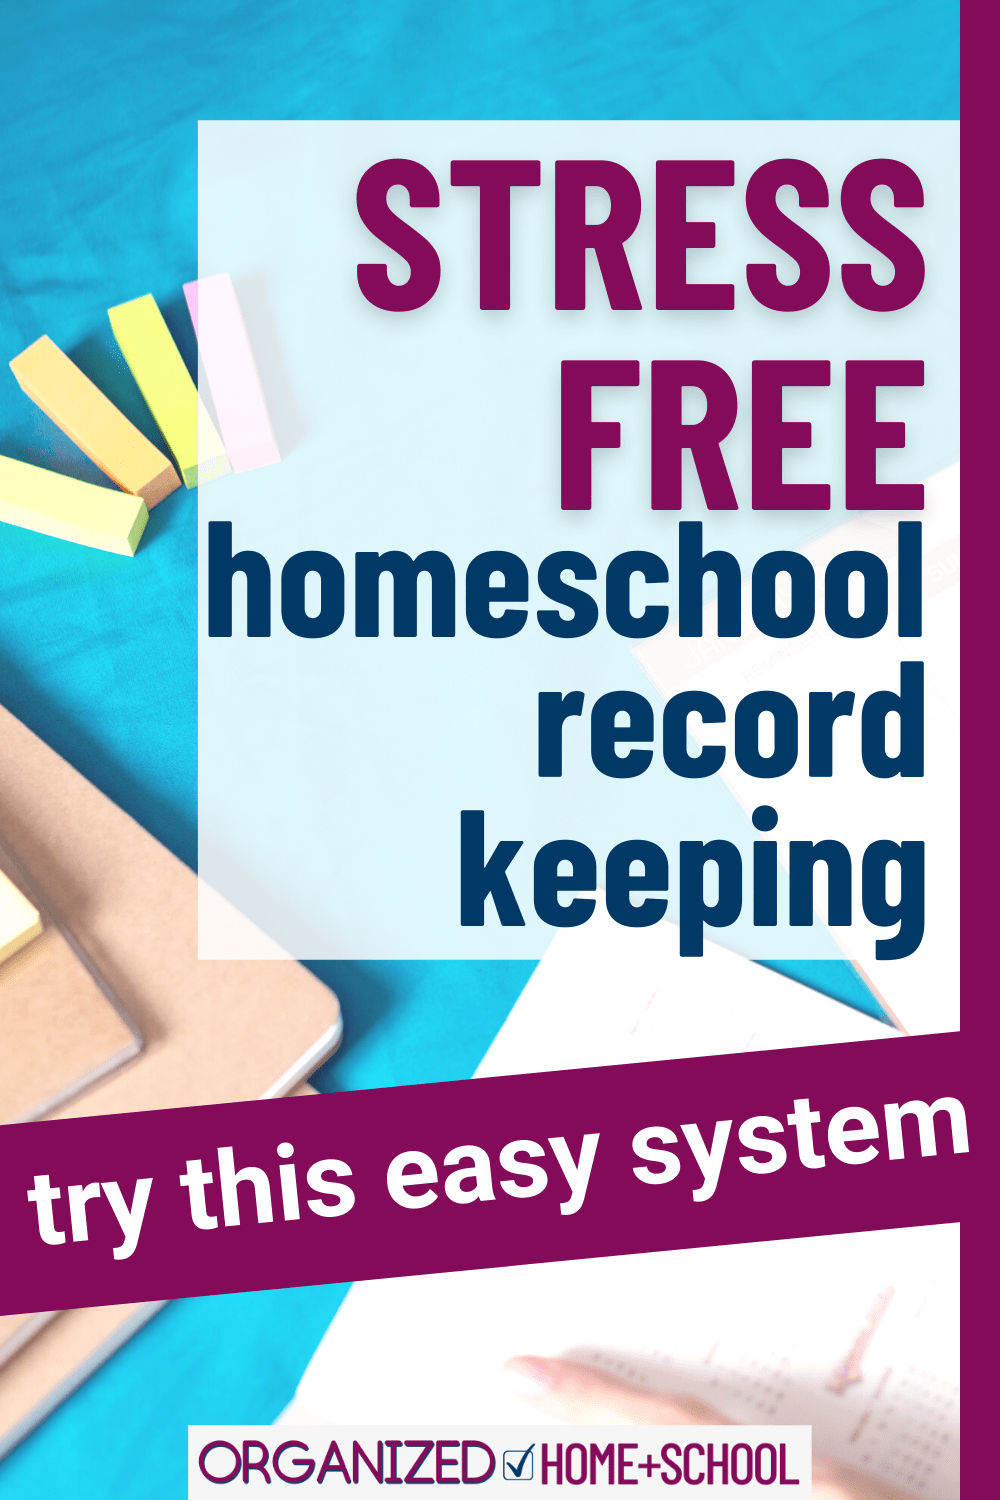 Need a simpler method for keeping track of your kids' home education? Try this easy homeschool record-keeping system.